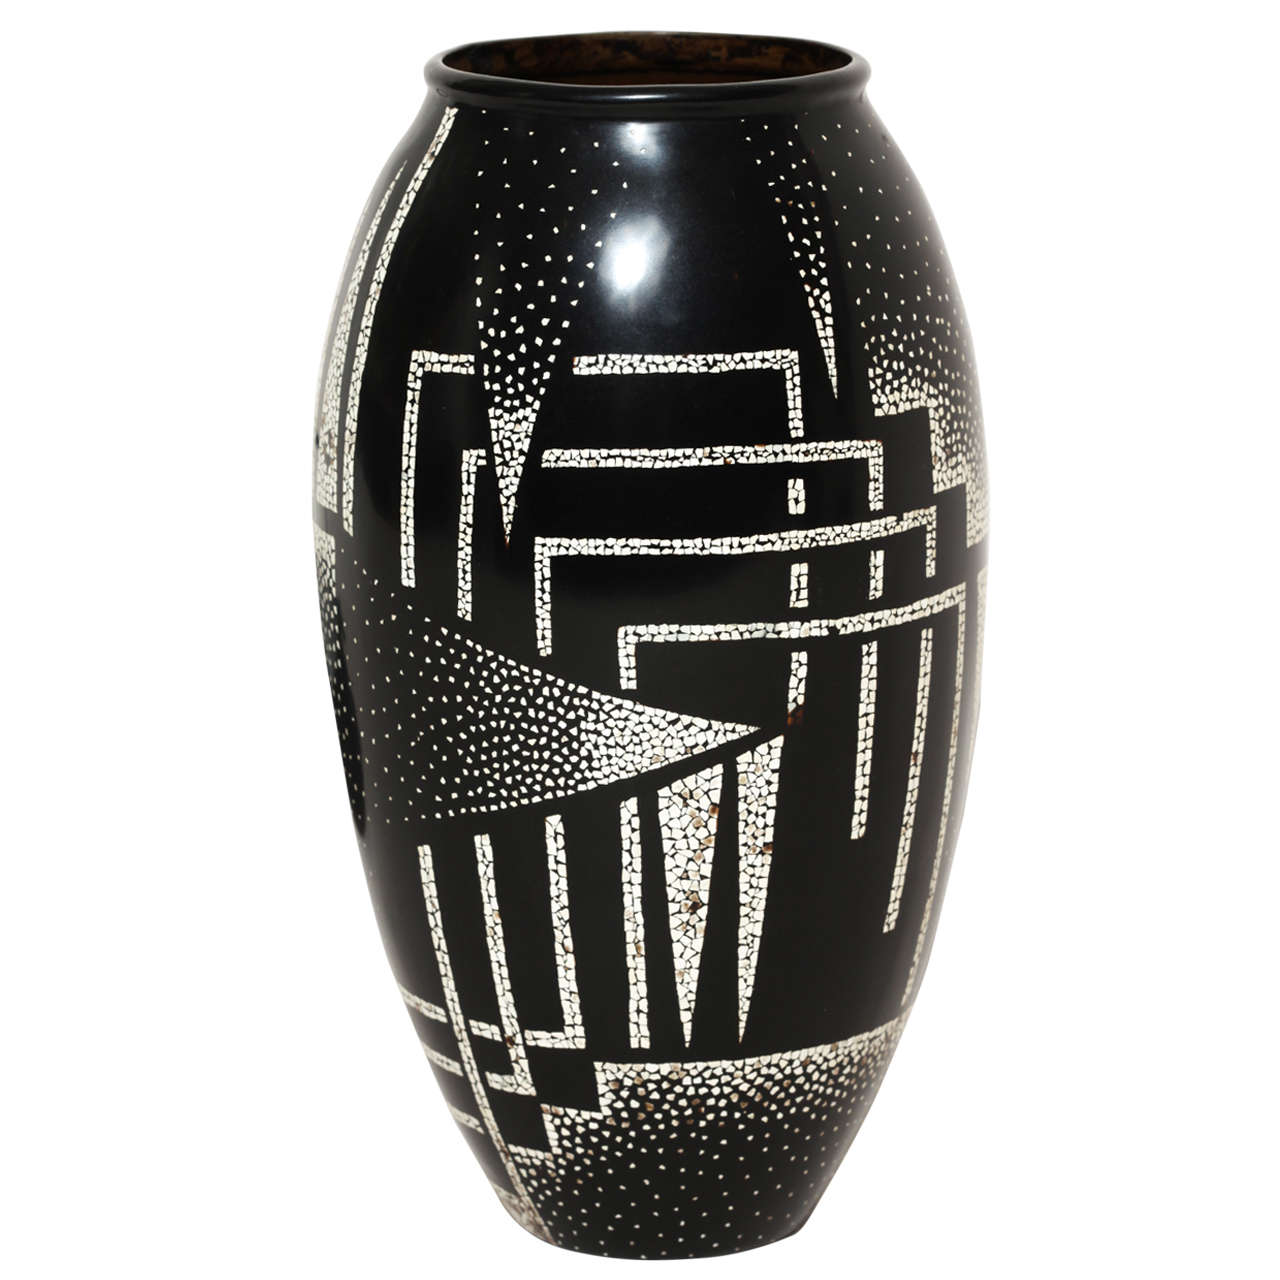 Jean Dunand French Art Deco Coquille d'Oeuf and Black Lacquered Vase 1